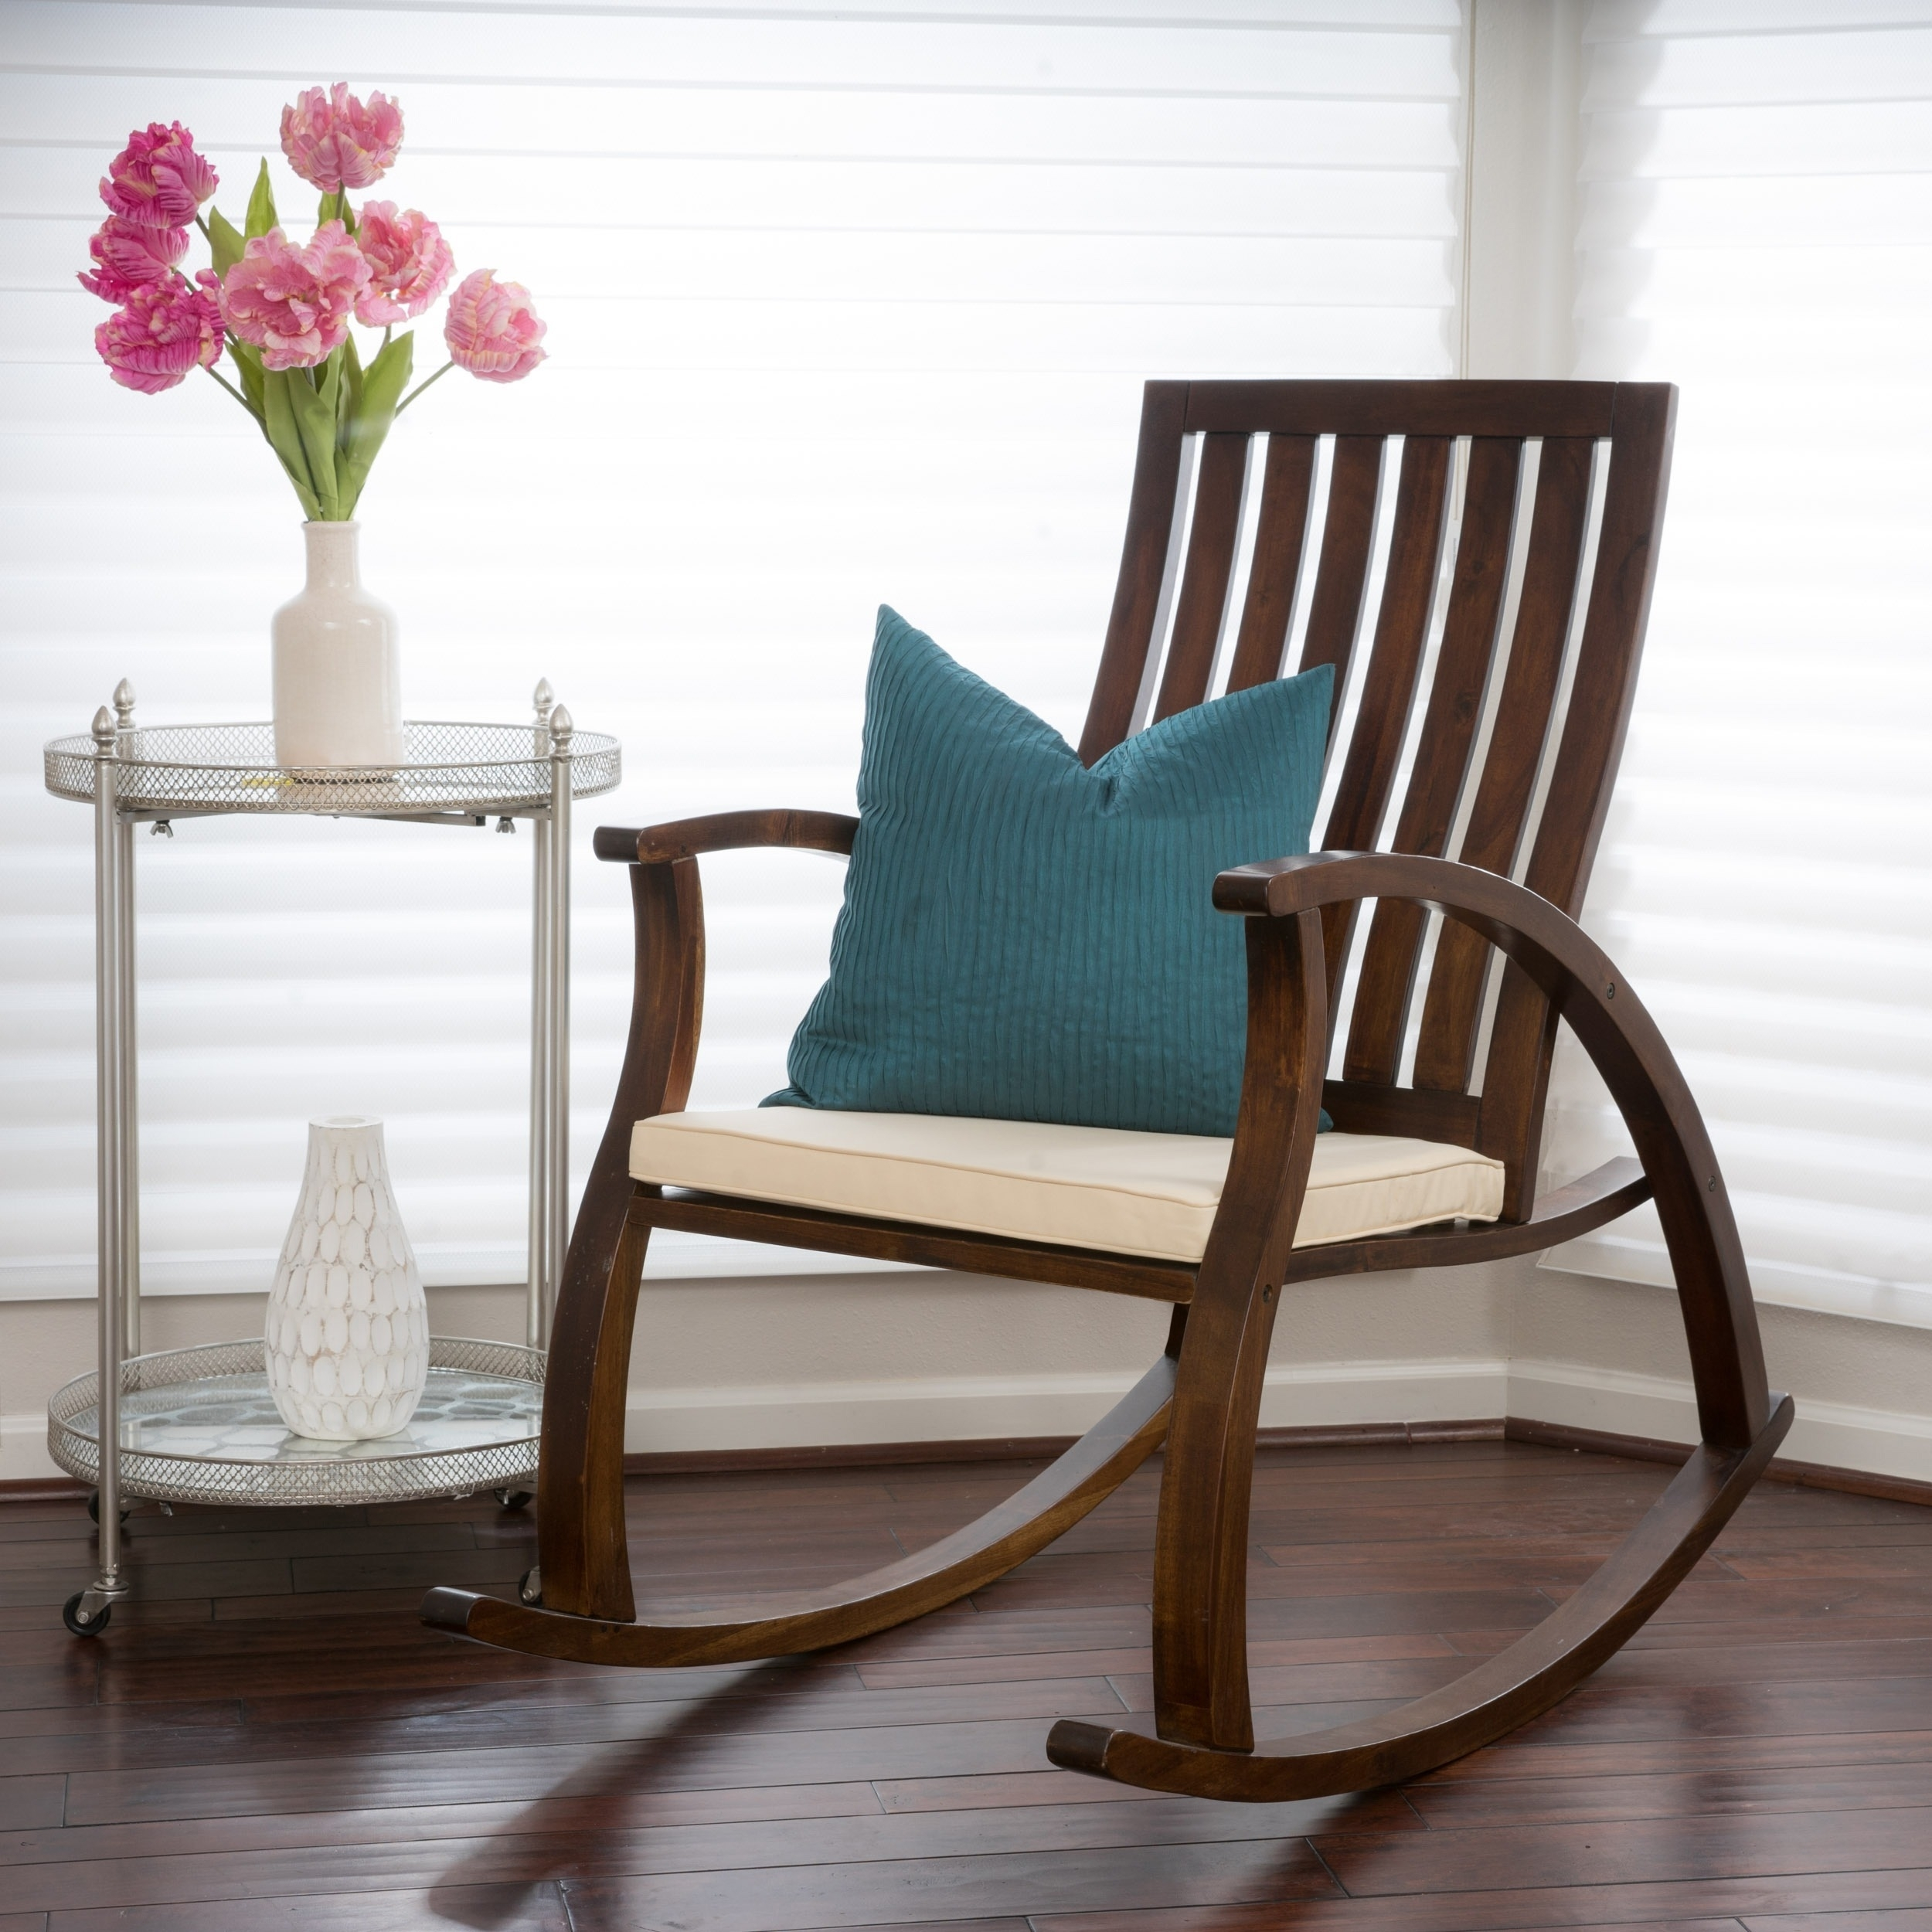 Shop Abraham Brown Mahogany Wood Rocking Chair W/ Cushion For Rocking Chairs With Lumbar Support (View 13 of 15)